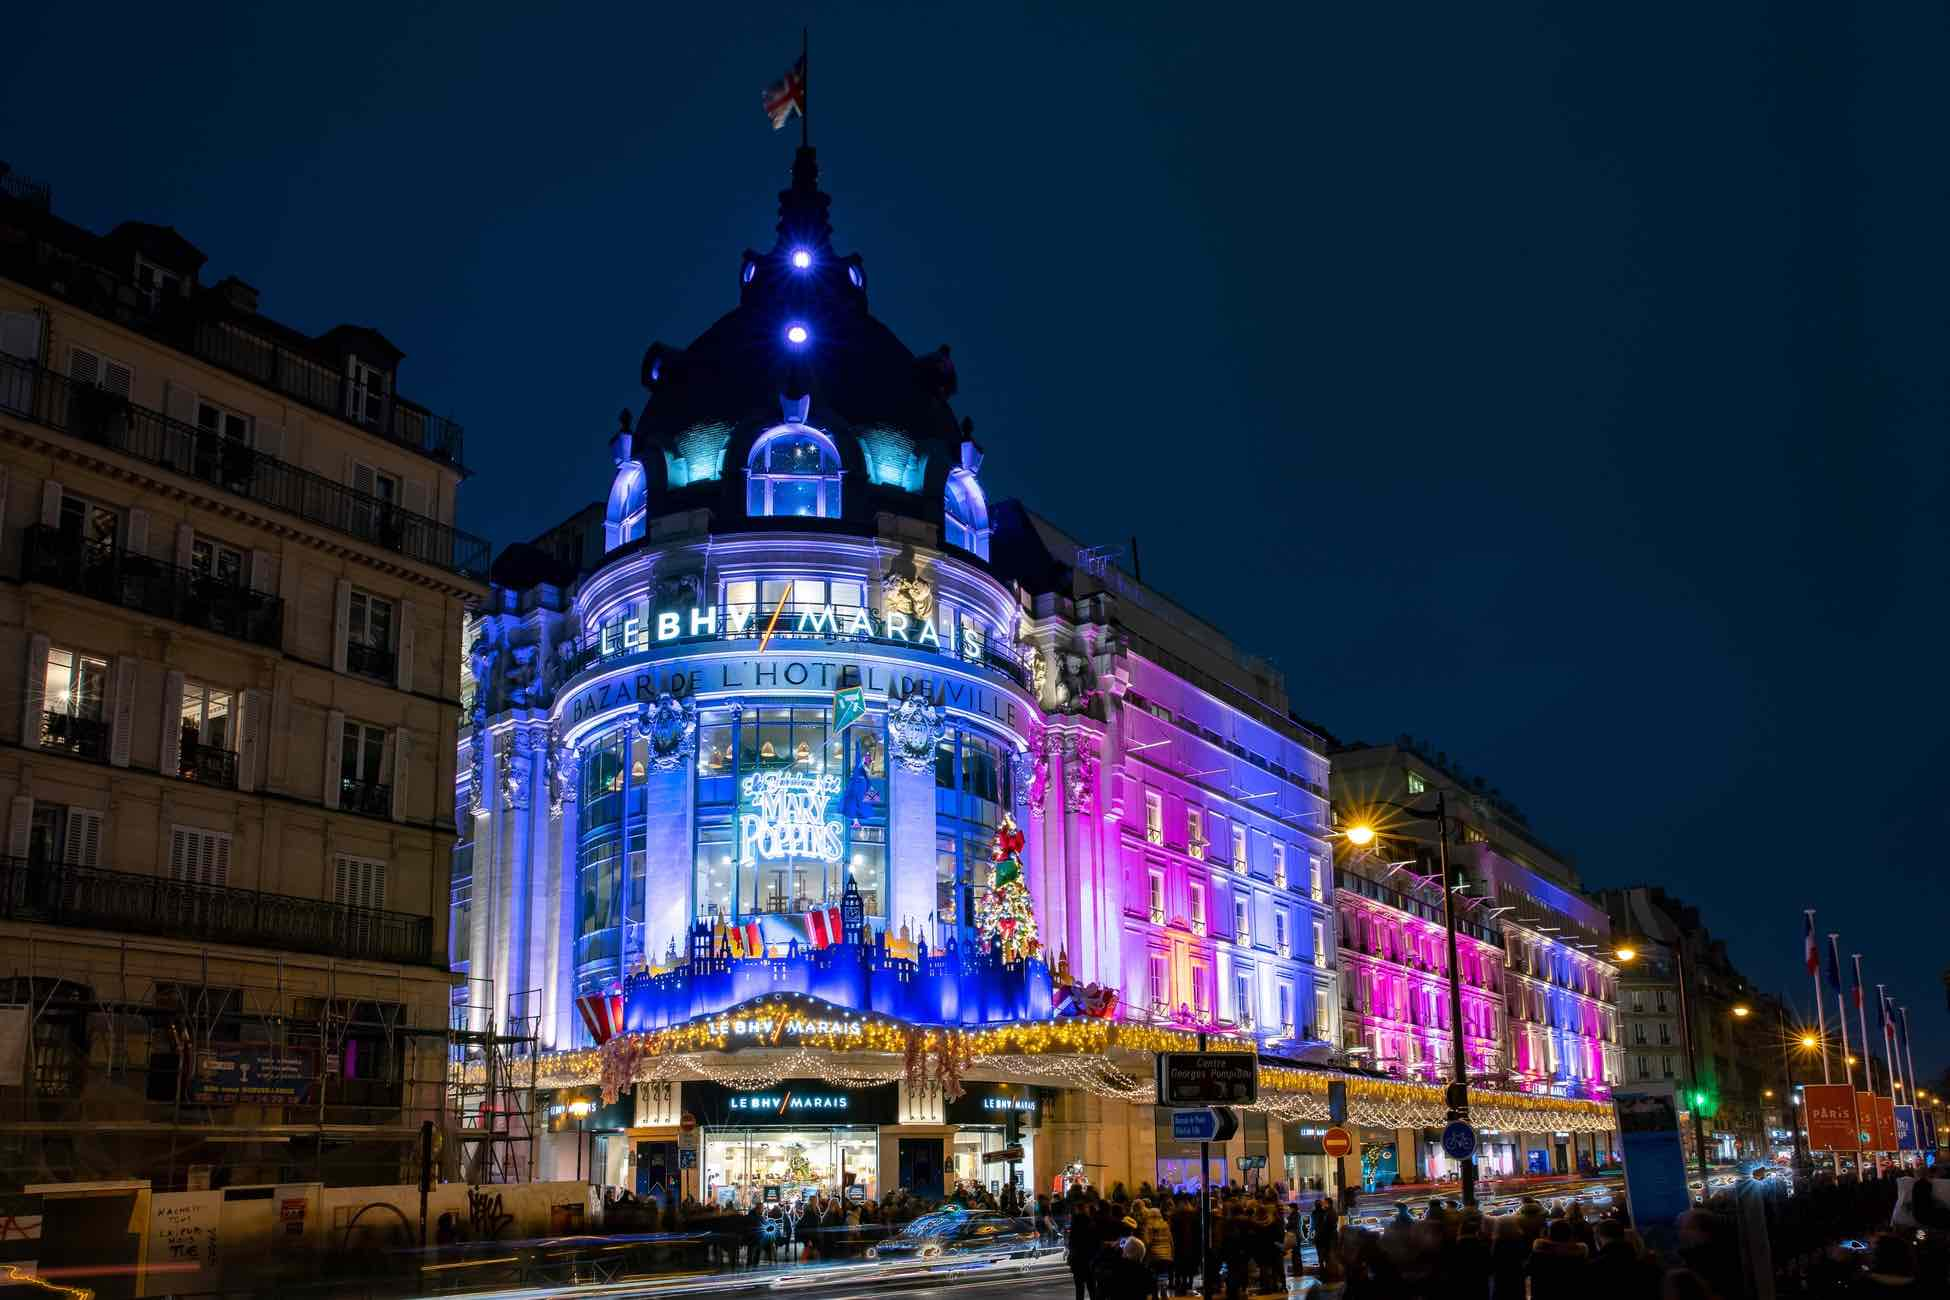 Visiting the Hotel de Ville is one of the top things to do in le Marais at night